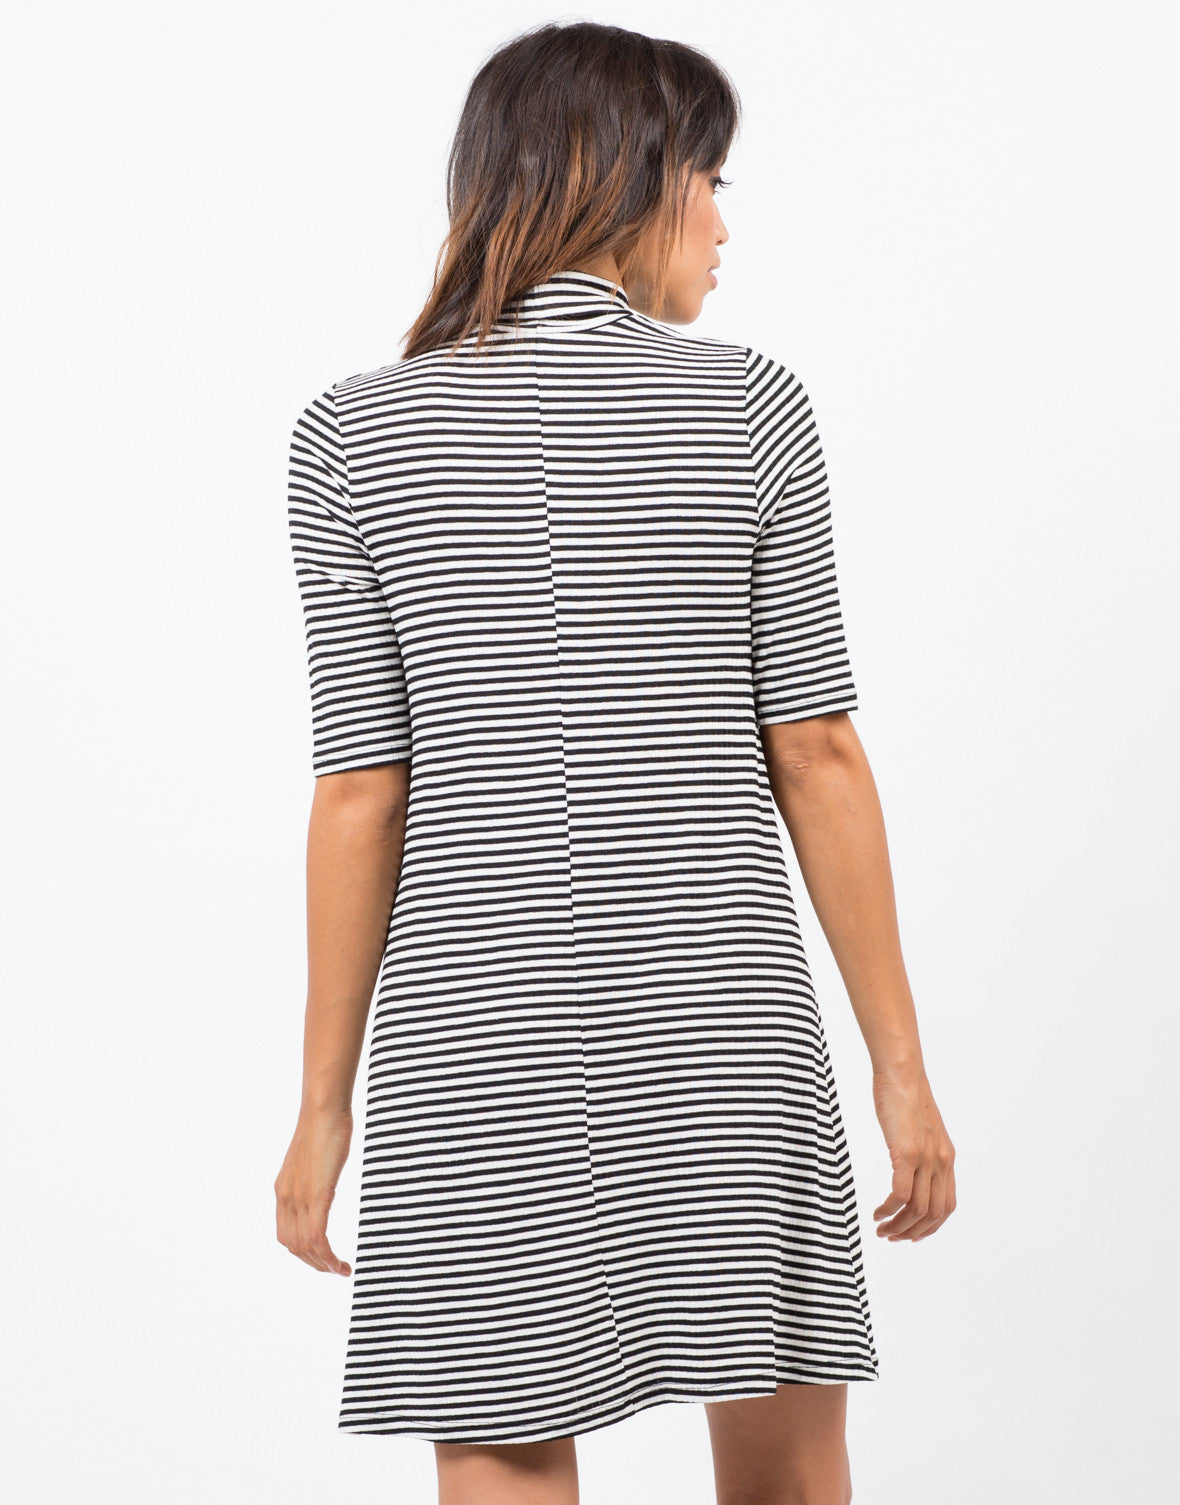 Back View of Striped Turtleneck Dress